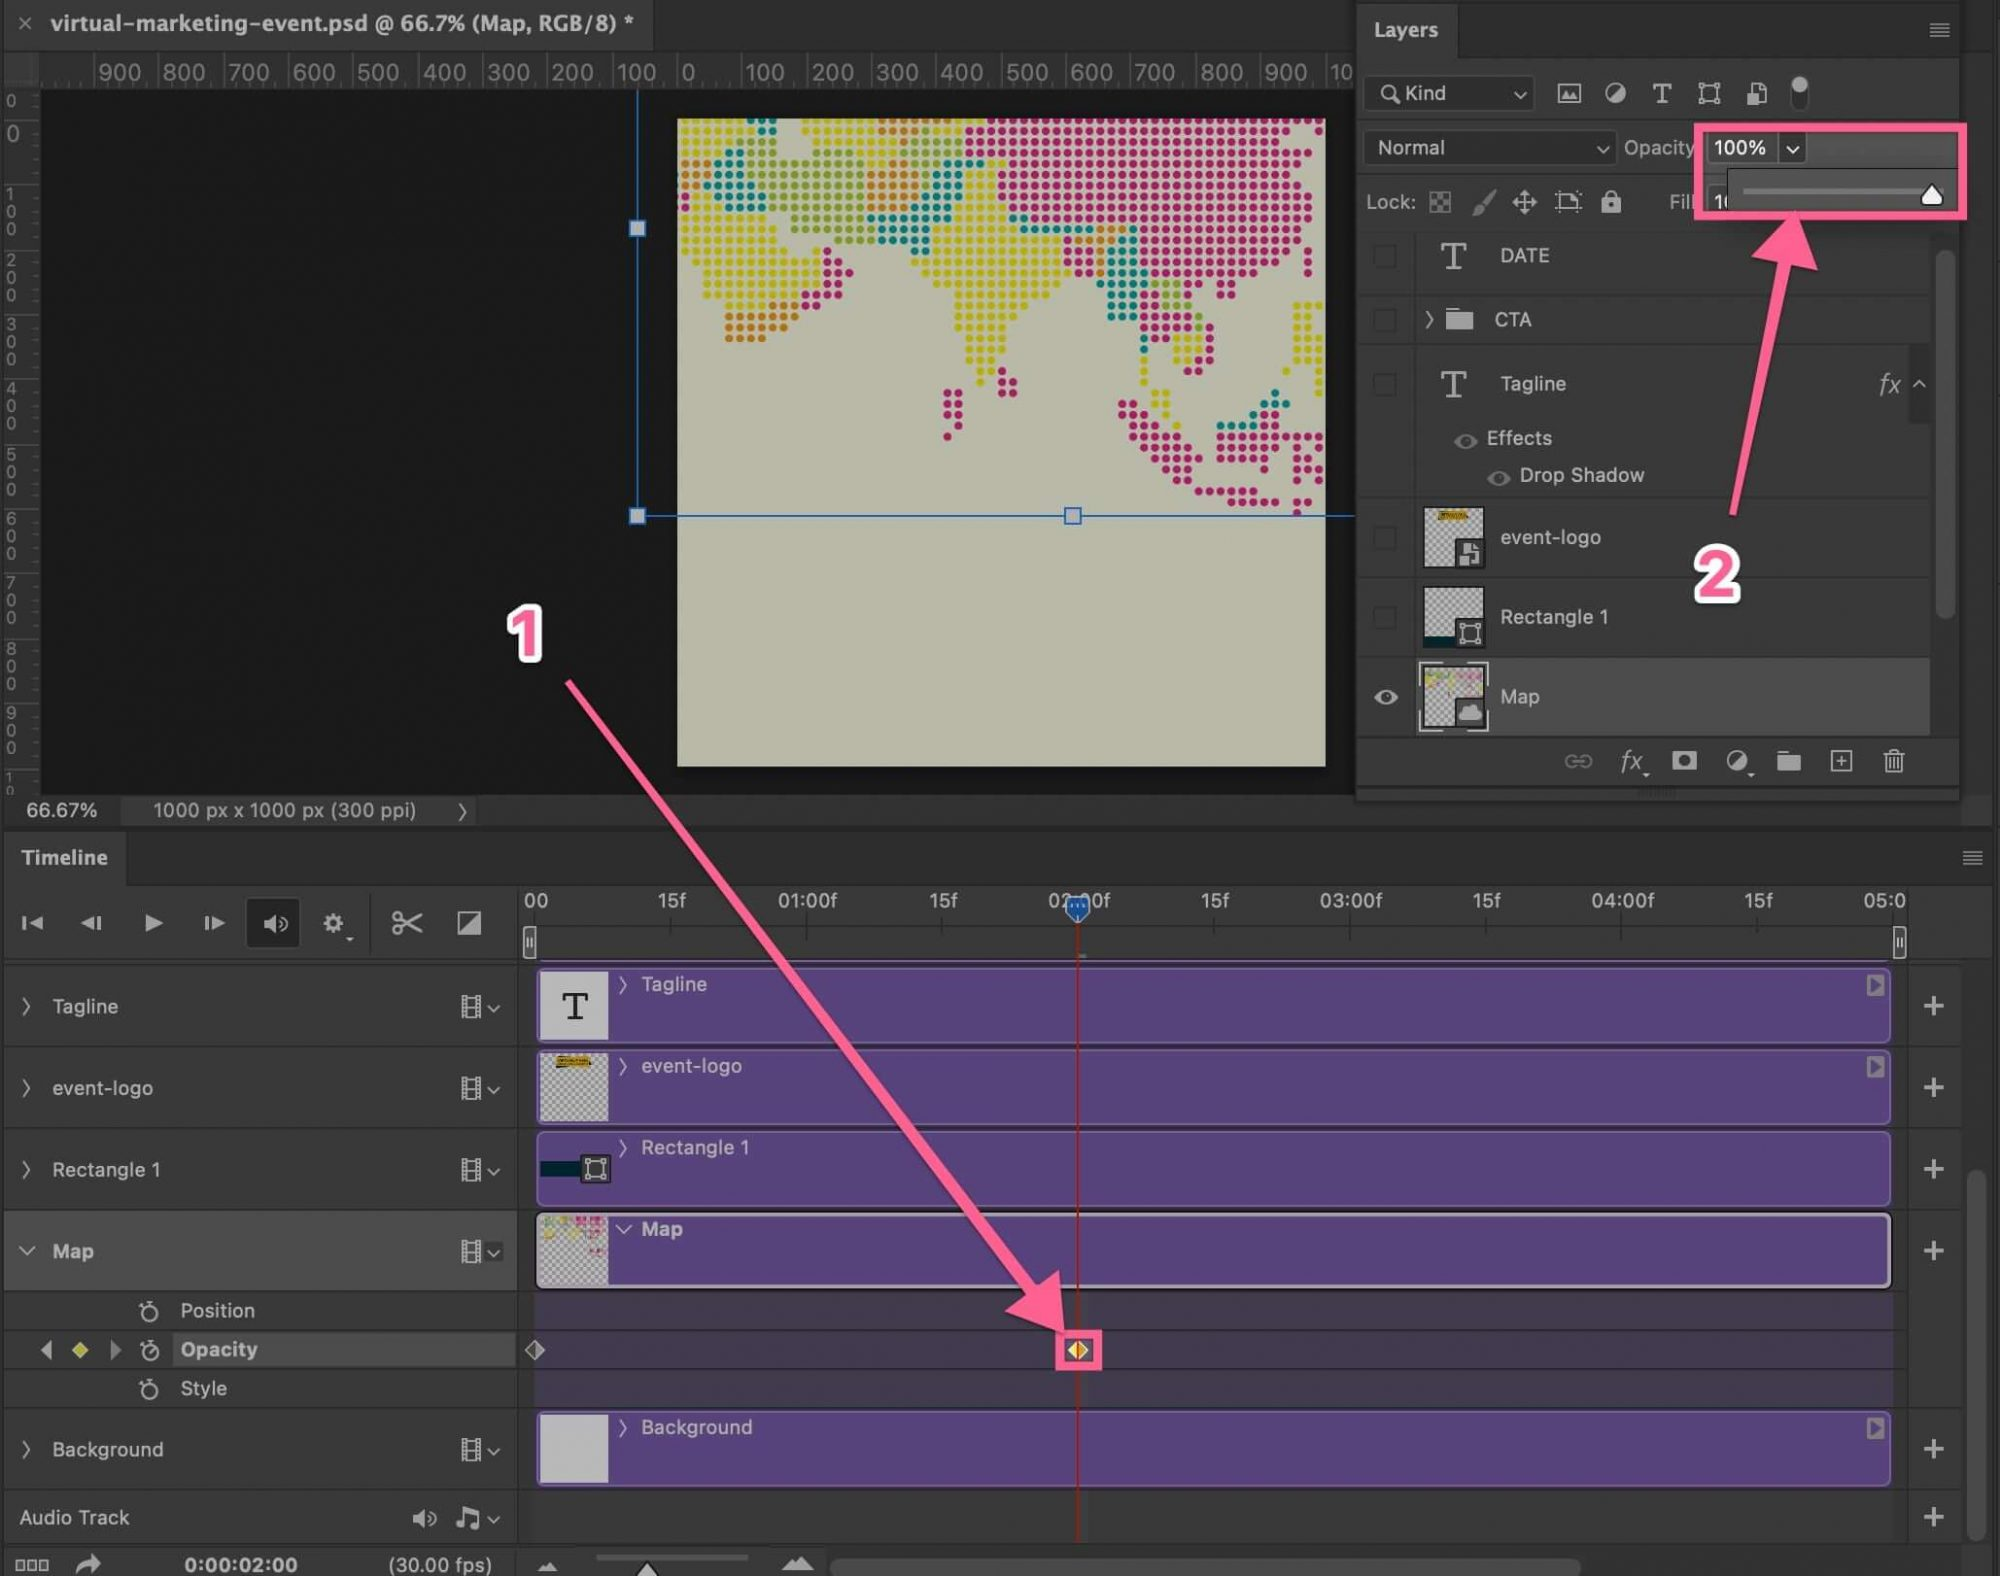 Make layer opacity to be 100% in Photoshop